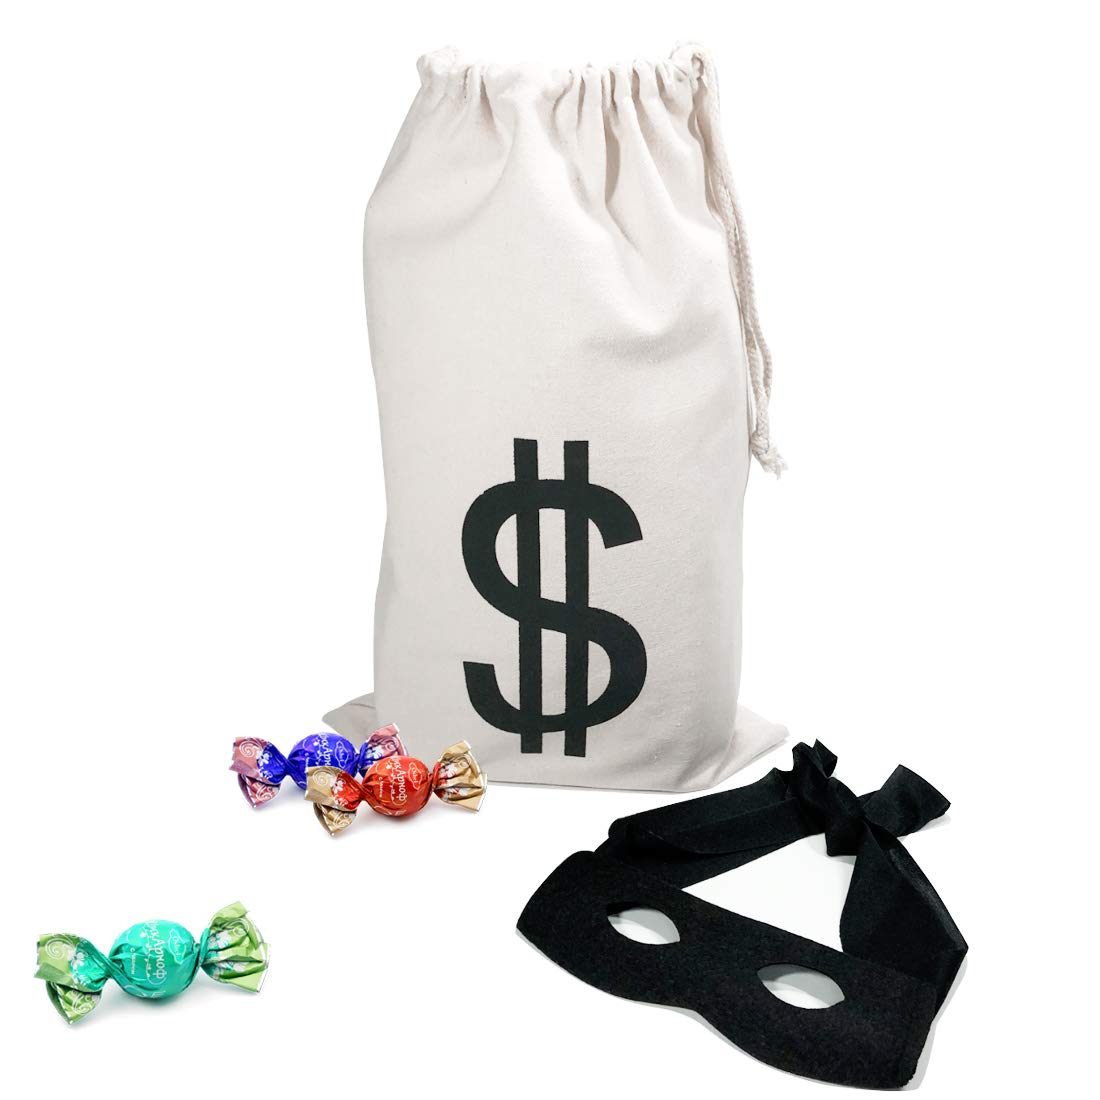 PAUBOLI Robber Costume Black Eye Mask+ Canvas Drawstring Bag Dollar Sign Canvas Bag Halloween (11 x 17 inches) yw0029-11x17